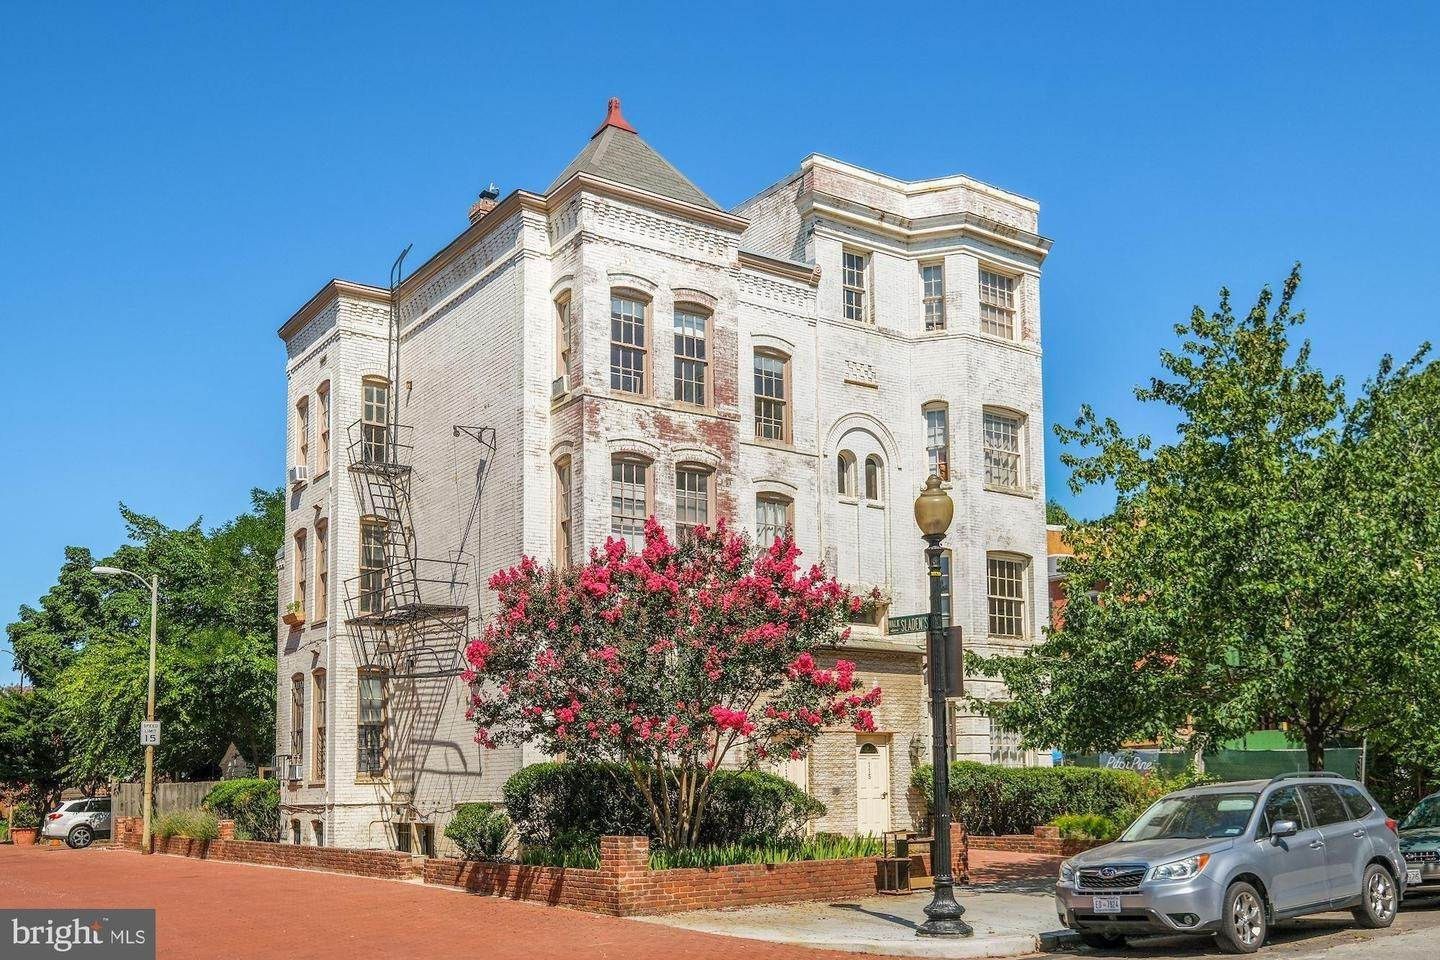 Villa/Townhouse for Sale at Twin/Semi-Detached, Multi-Family - WASHINGTON, DC 115 12TH ST SE Washington, District Of Columbia,20003 United States